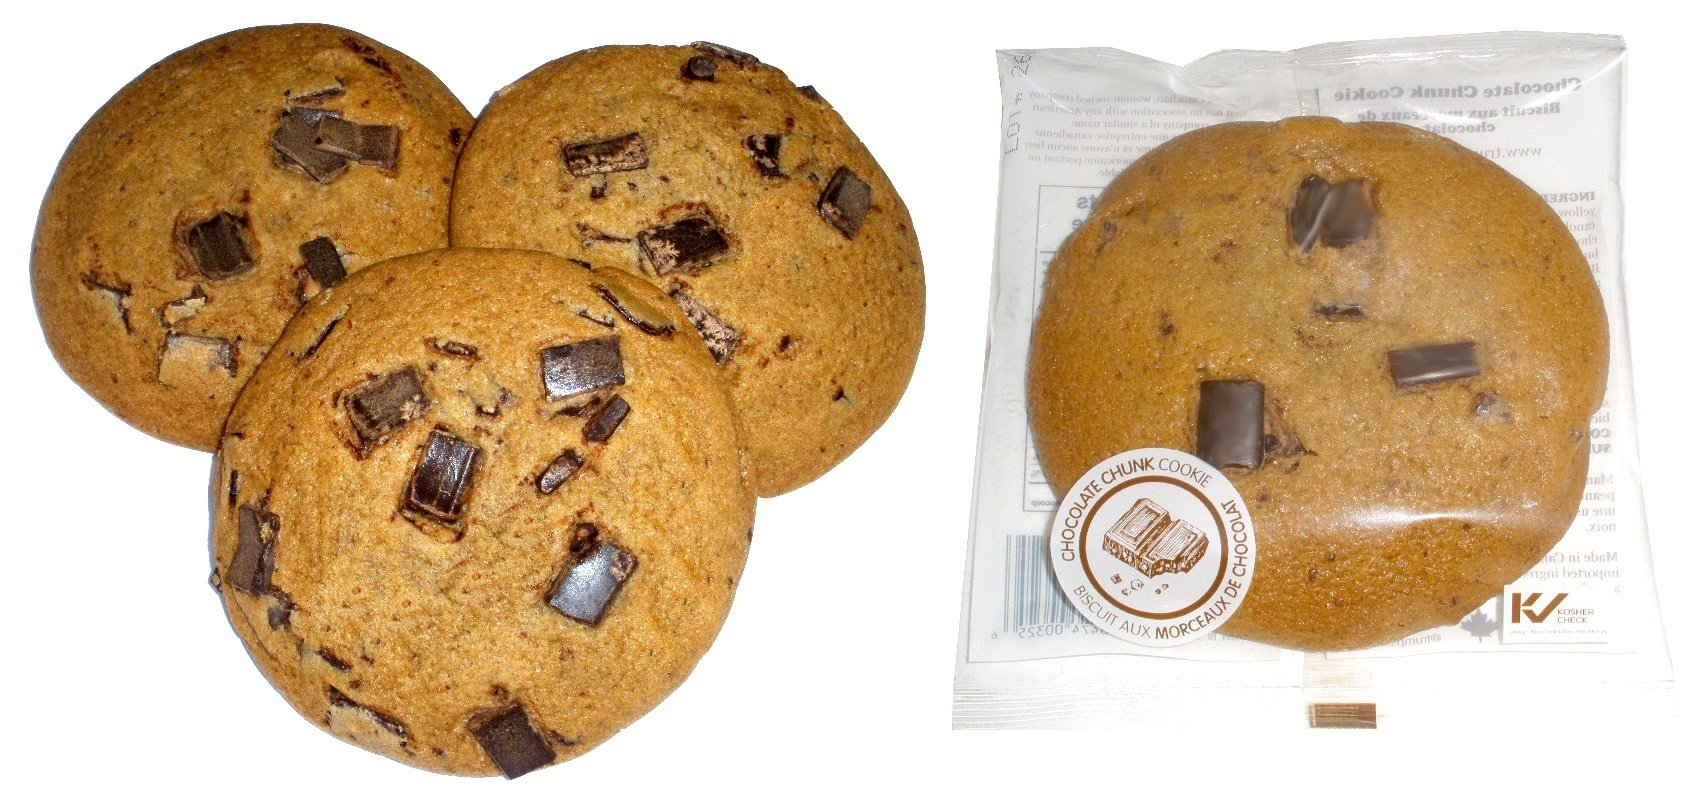 https://0901.nccdn.net/4_2/000/000/06b/a1b/Chocolate-Chunk-Cookie_2017-1692x802.jpg